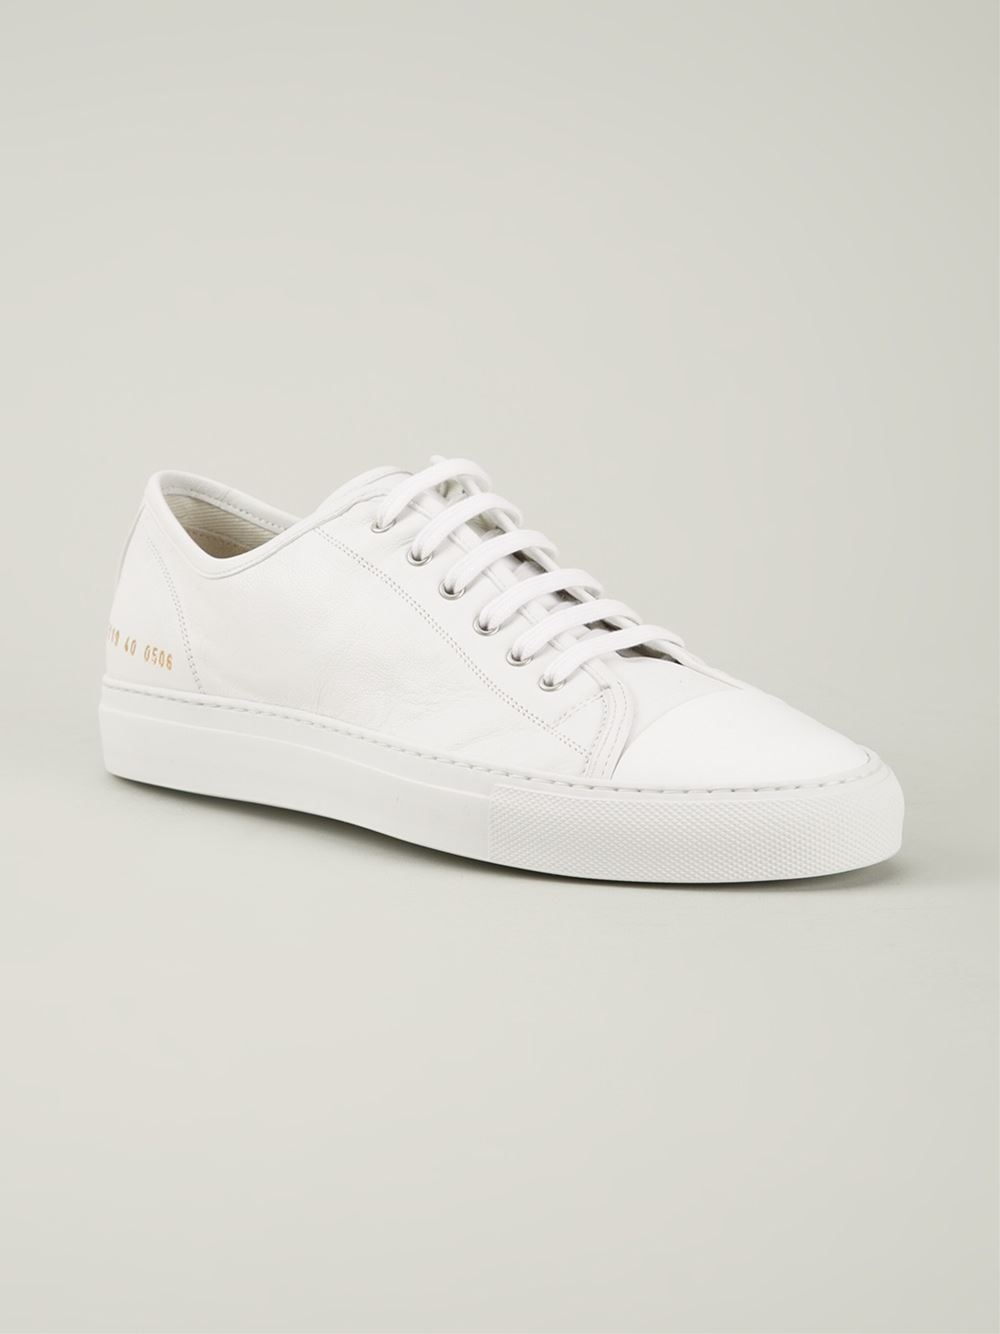 Cheap Inexpensive Clearance Best Wholesale lace-up sneakers - White Common Projects Free Shipping Visa Payment Free Shipping Amazing Price b37Jo